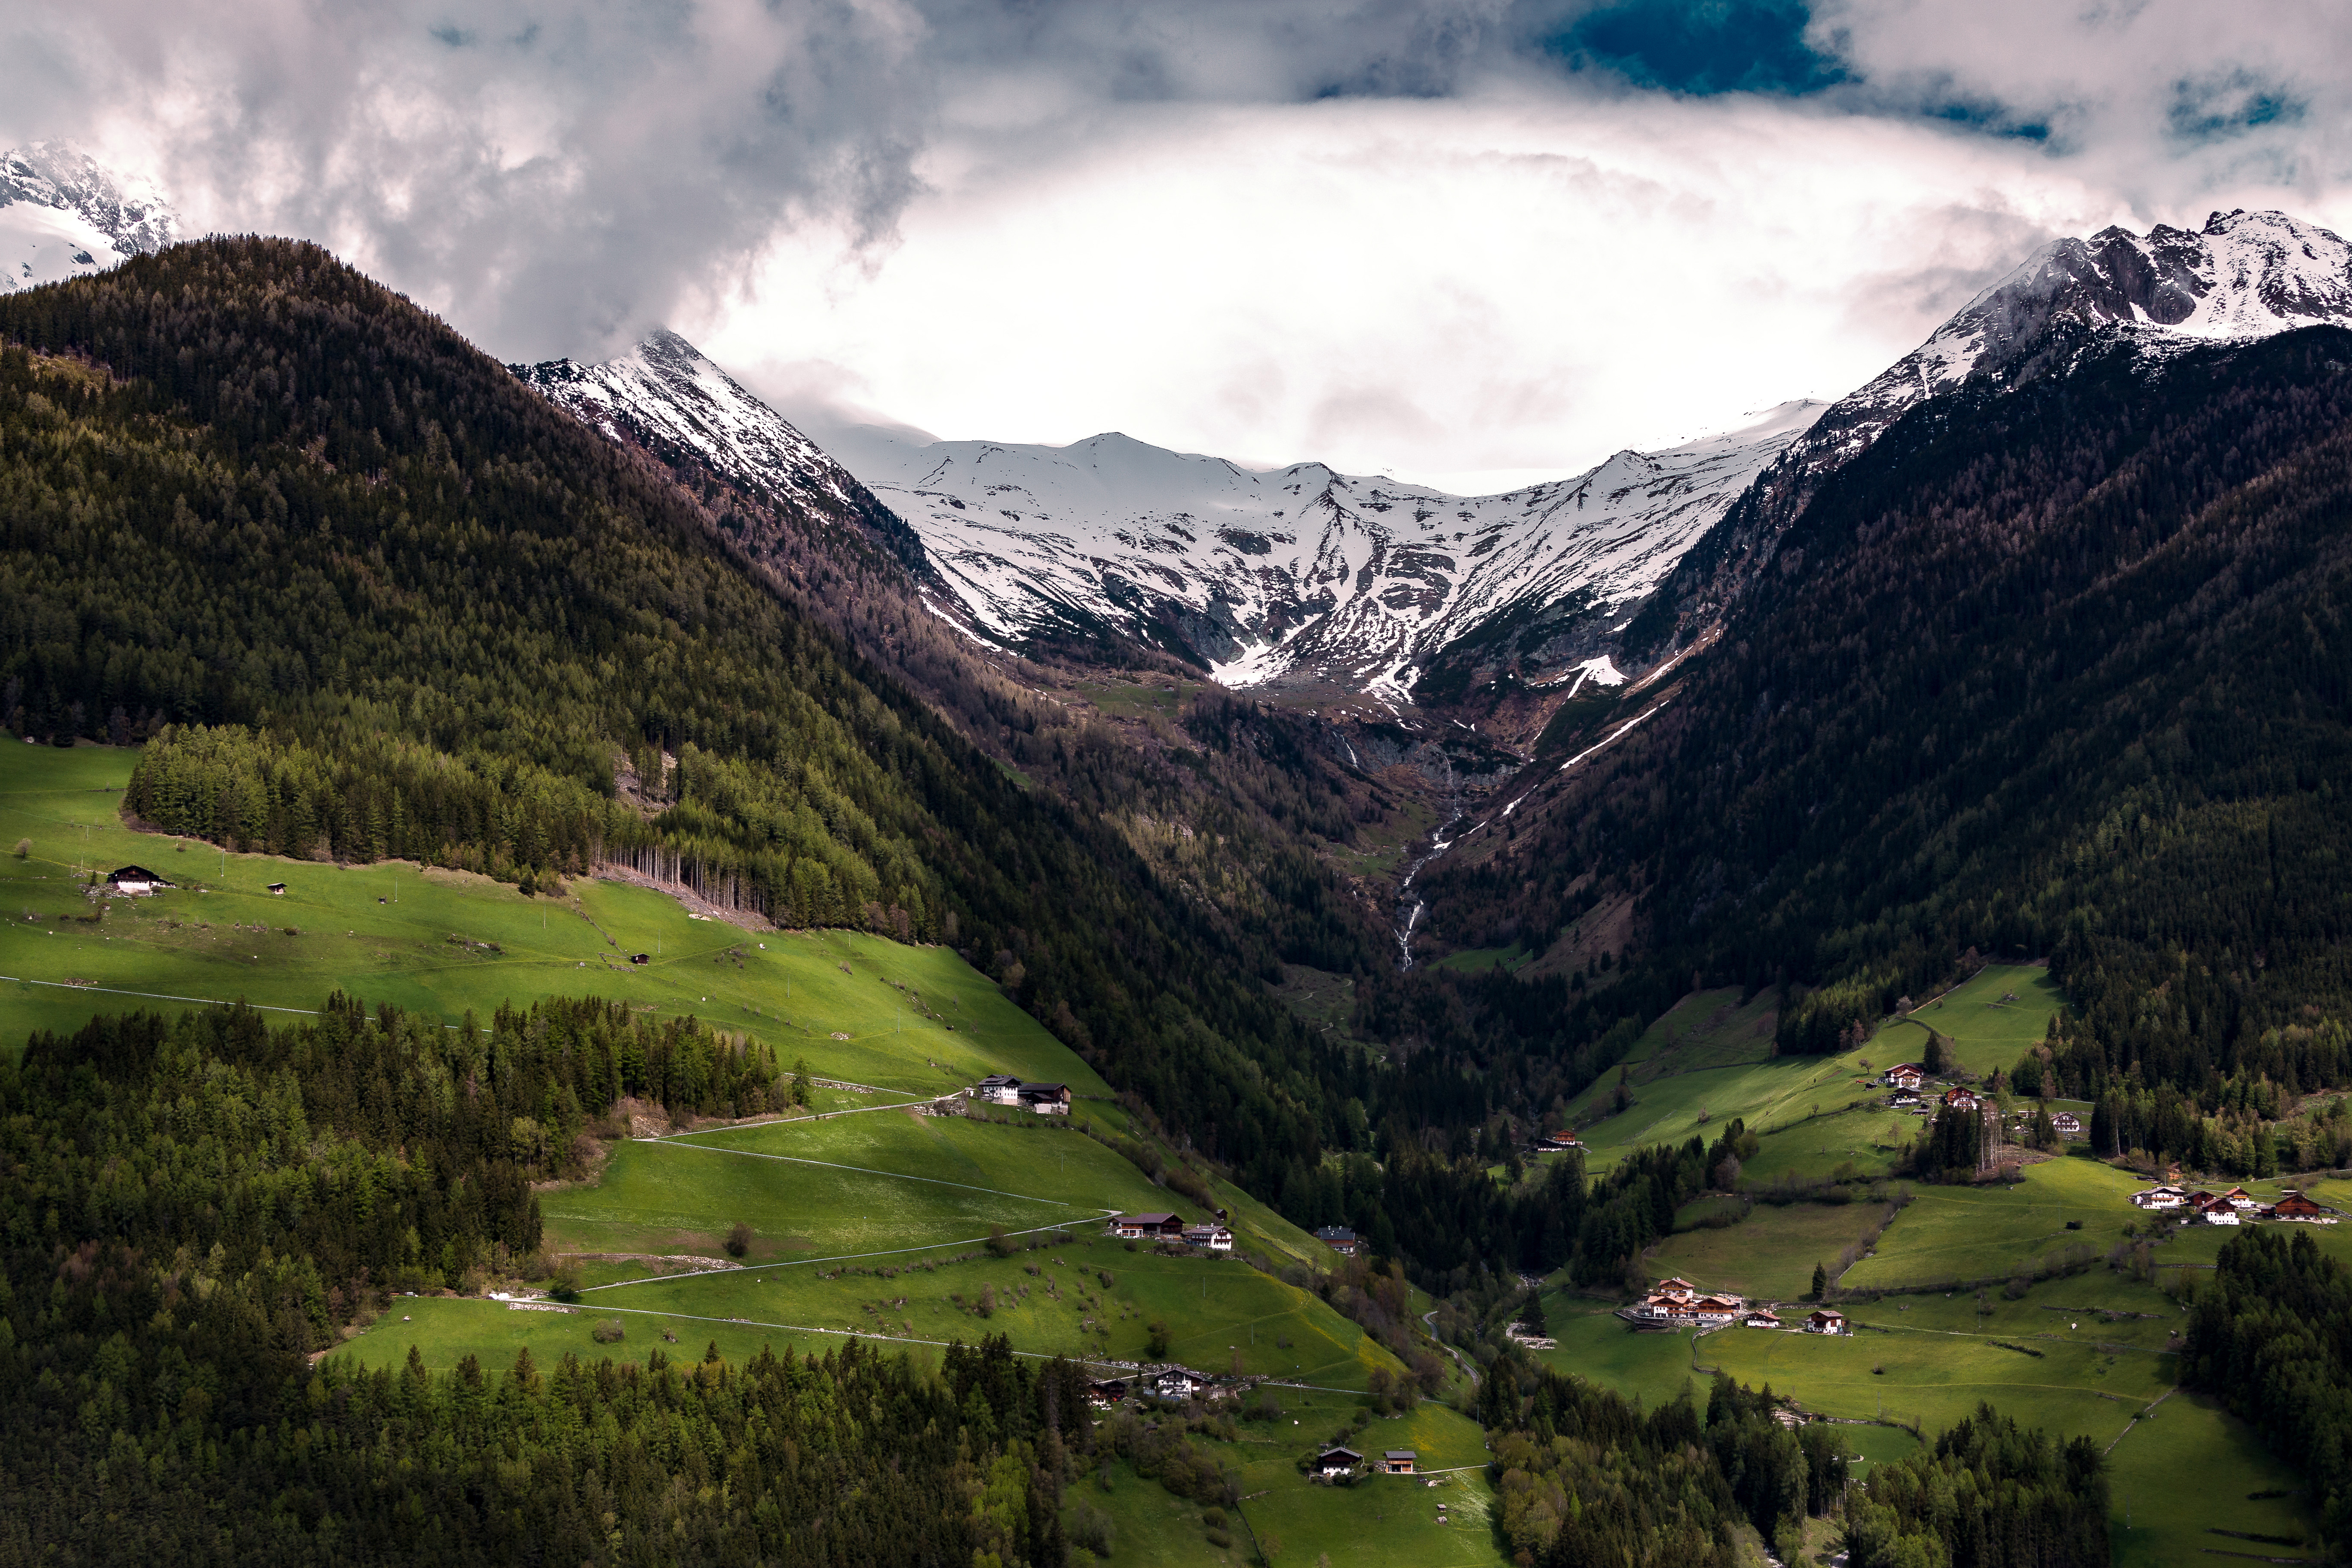 majestic mountain landscape with valley below image free